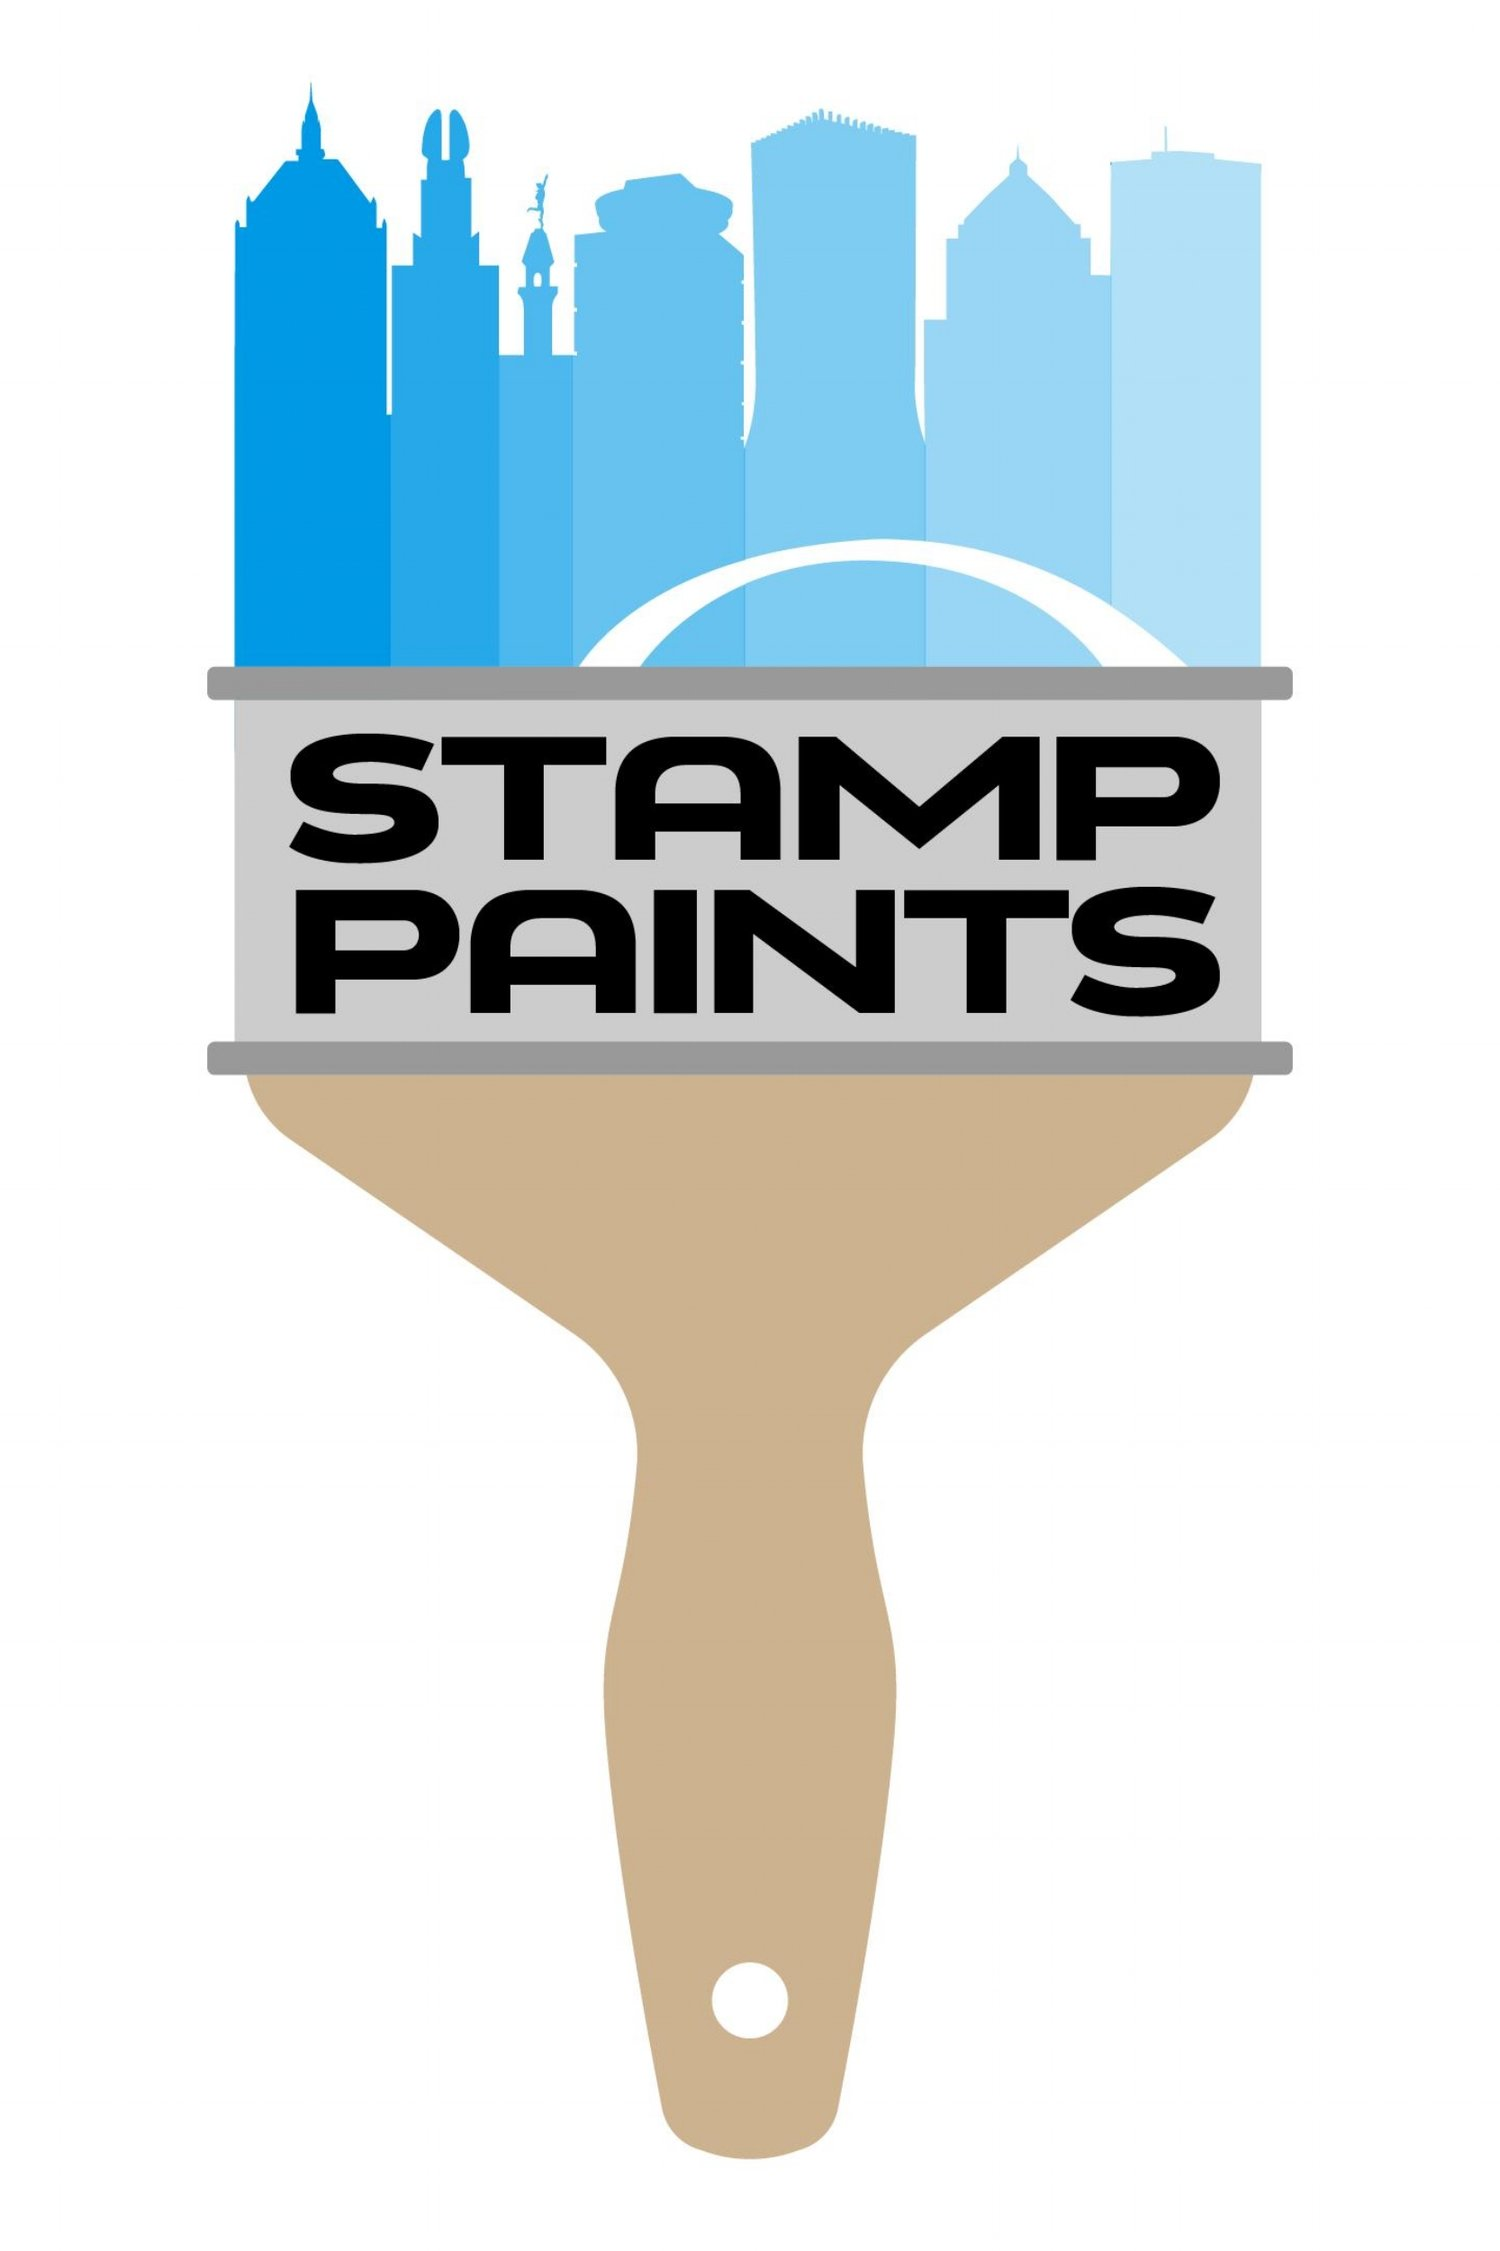 Stamp Paints